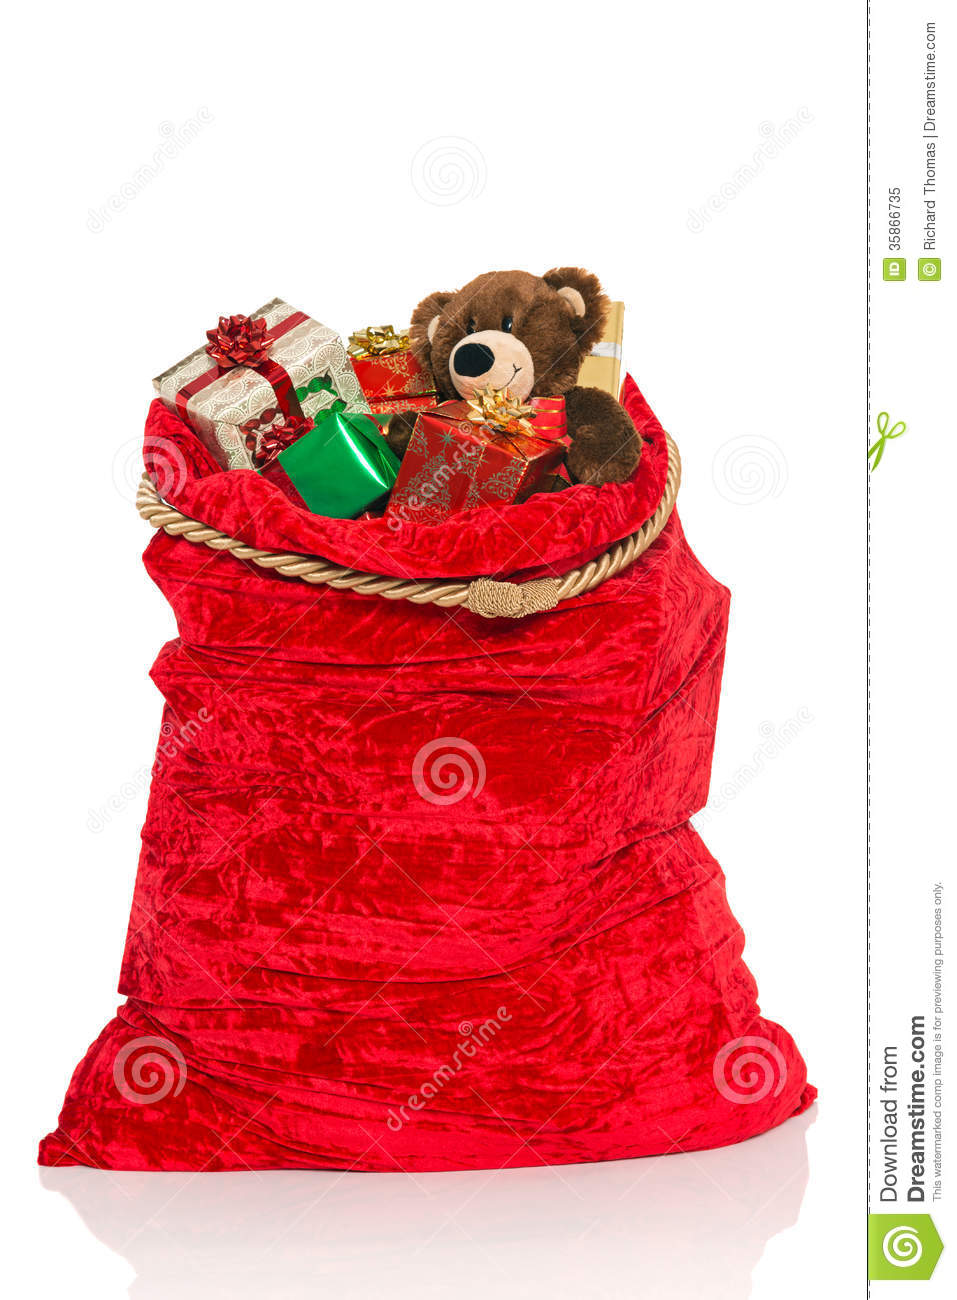 Bag Of Toys : Christmas sack full of toys royalty free stock photo